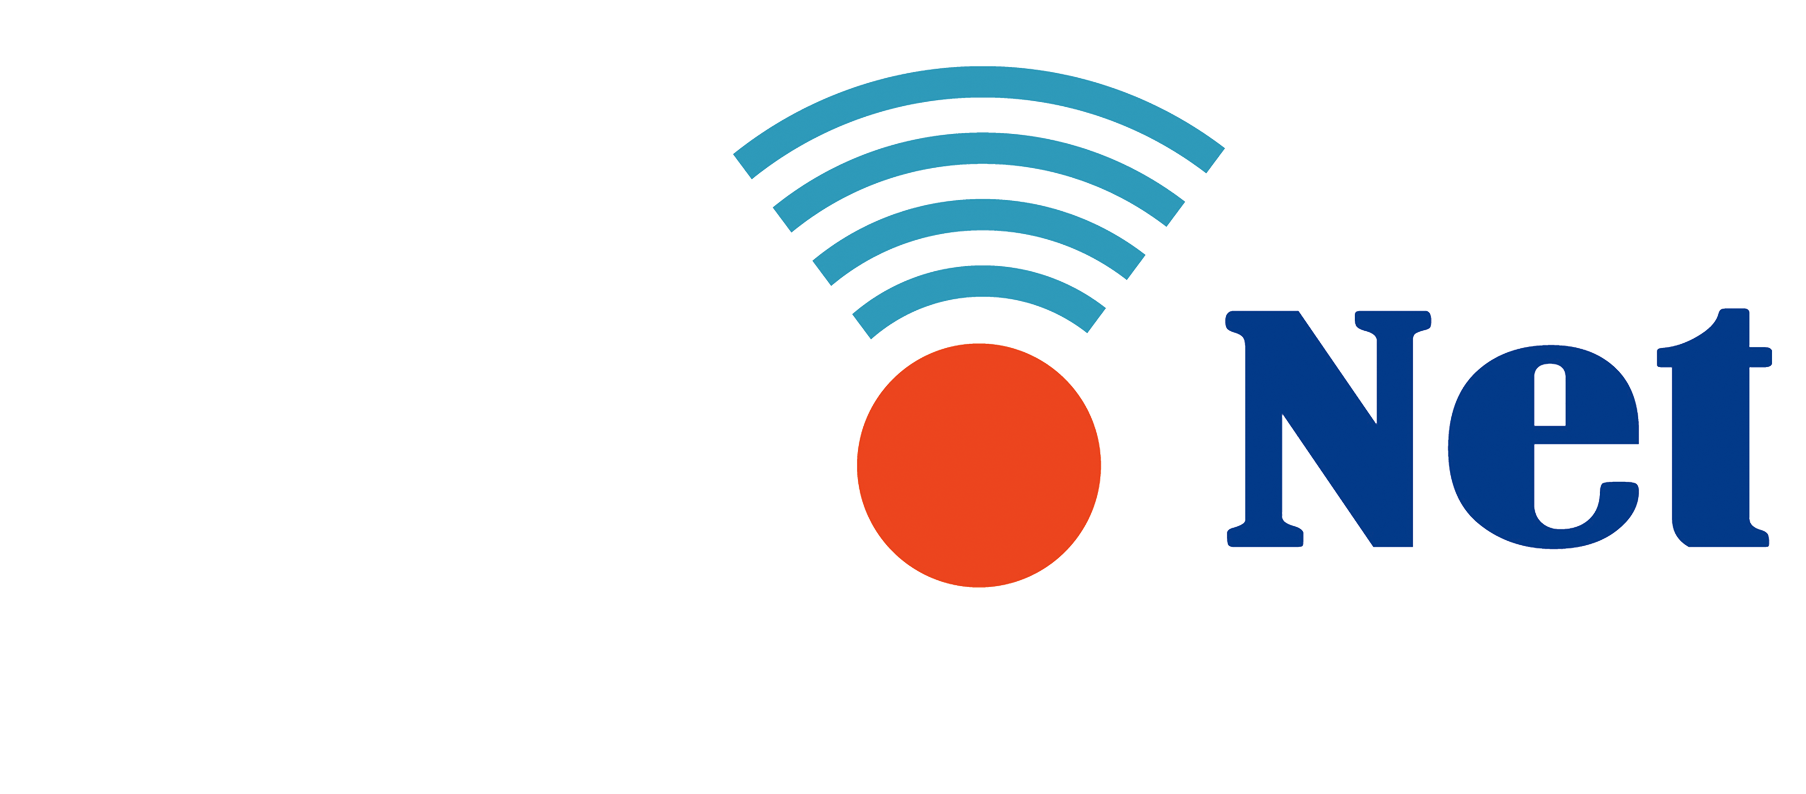 ComNet | Connecting your business…